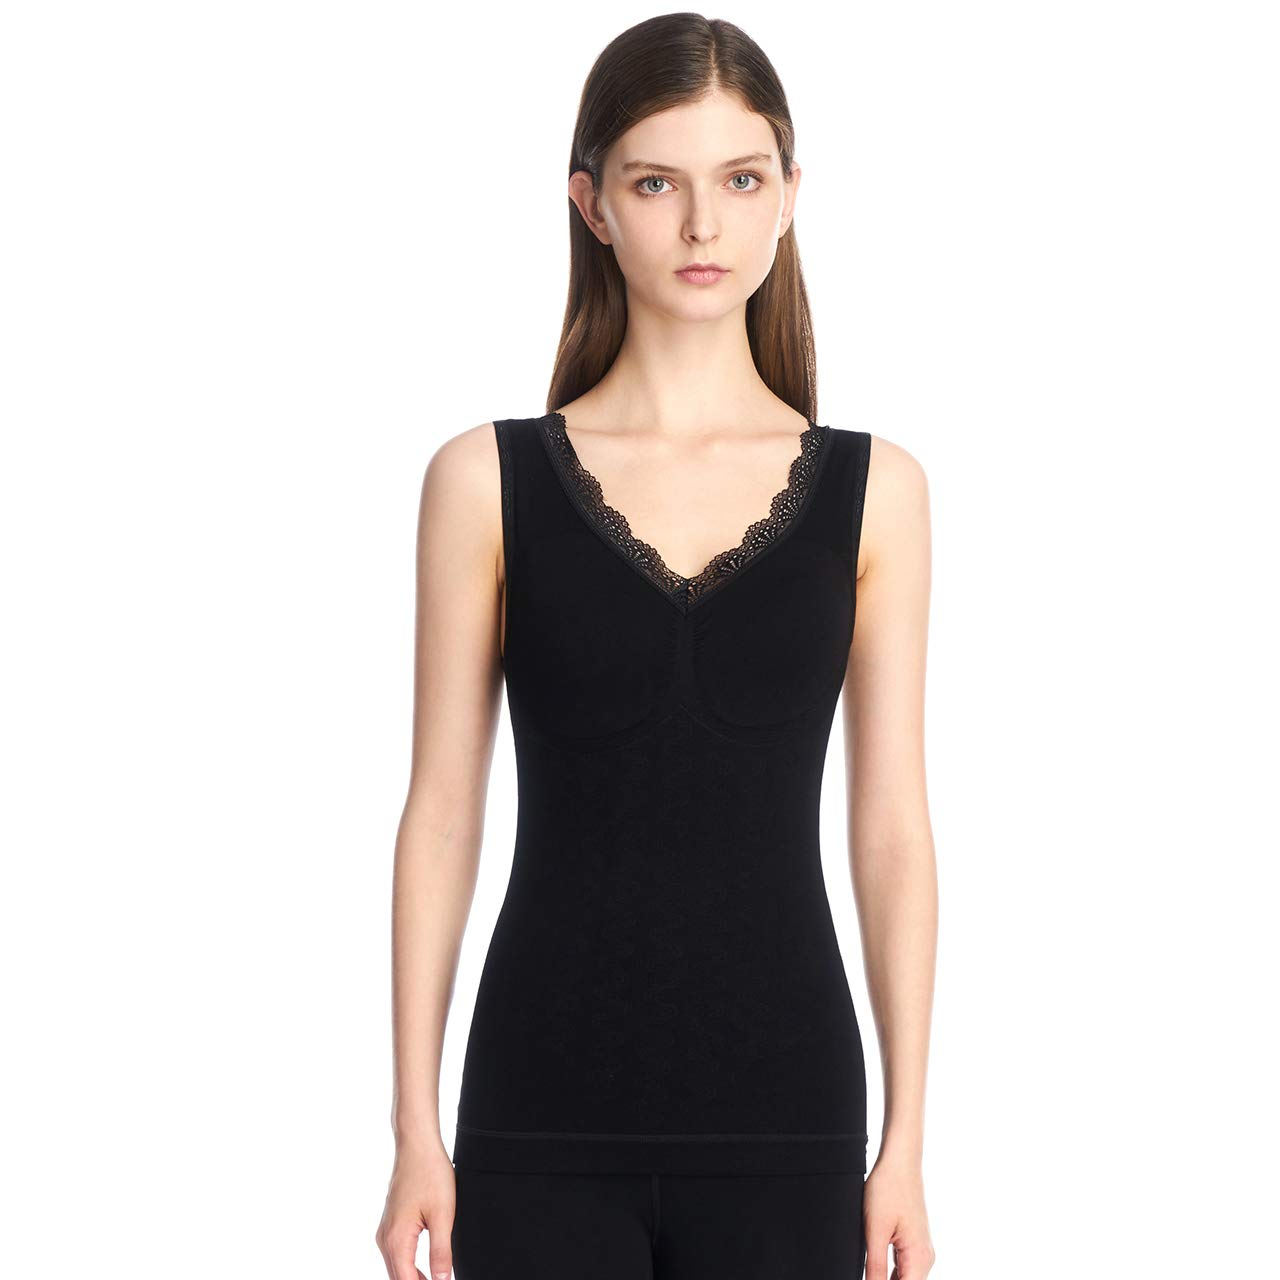 SANQIANG Womens Slim Fit Thermal Tank Top Fleece Lined Sleeveless Vest